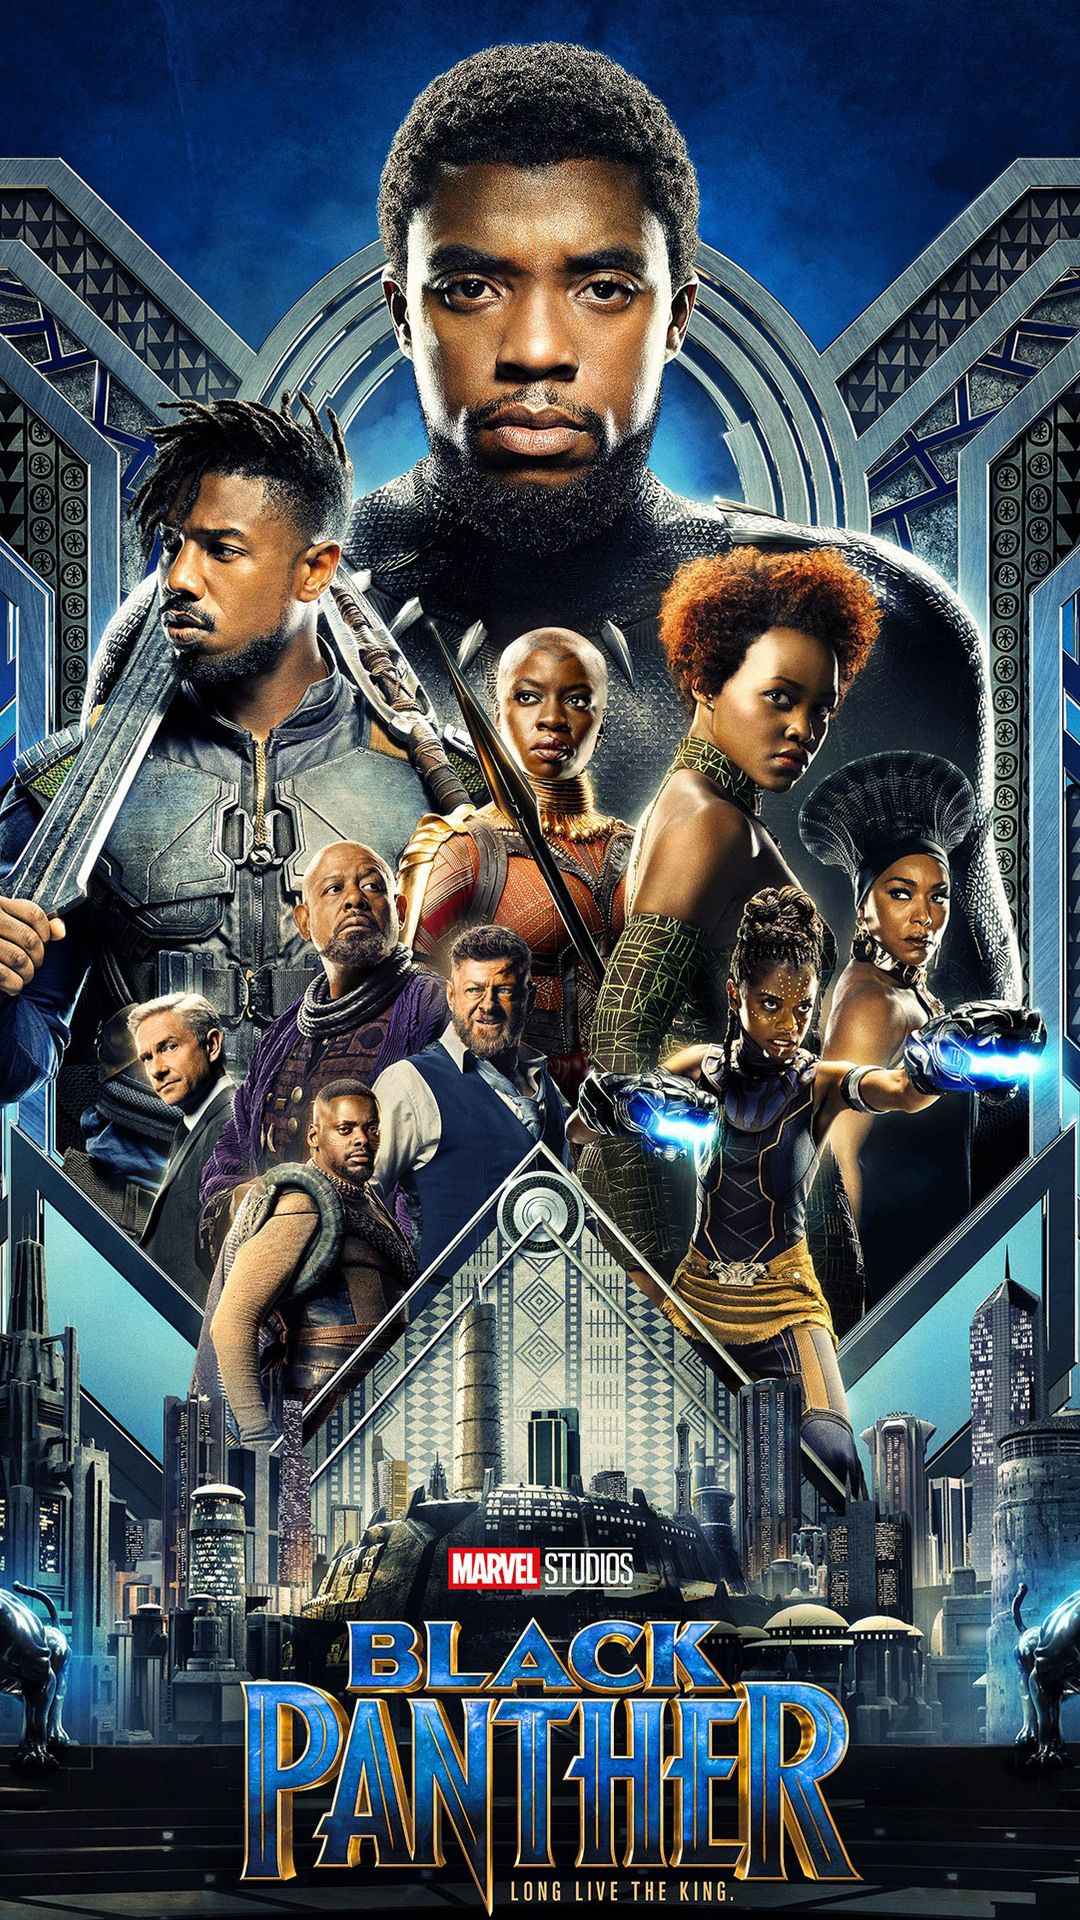 Top Wallpaper Movie Iphone 5 - black-panther-2018-movie-hd-h9-1080x1920  Collection_193264.jpg